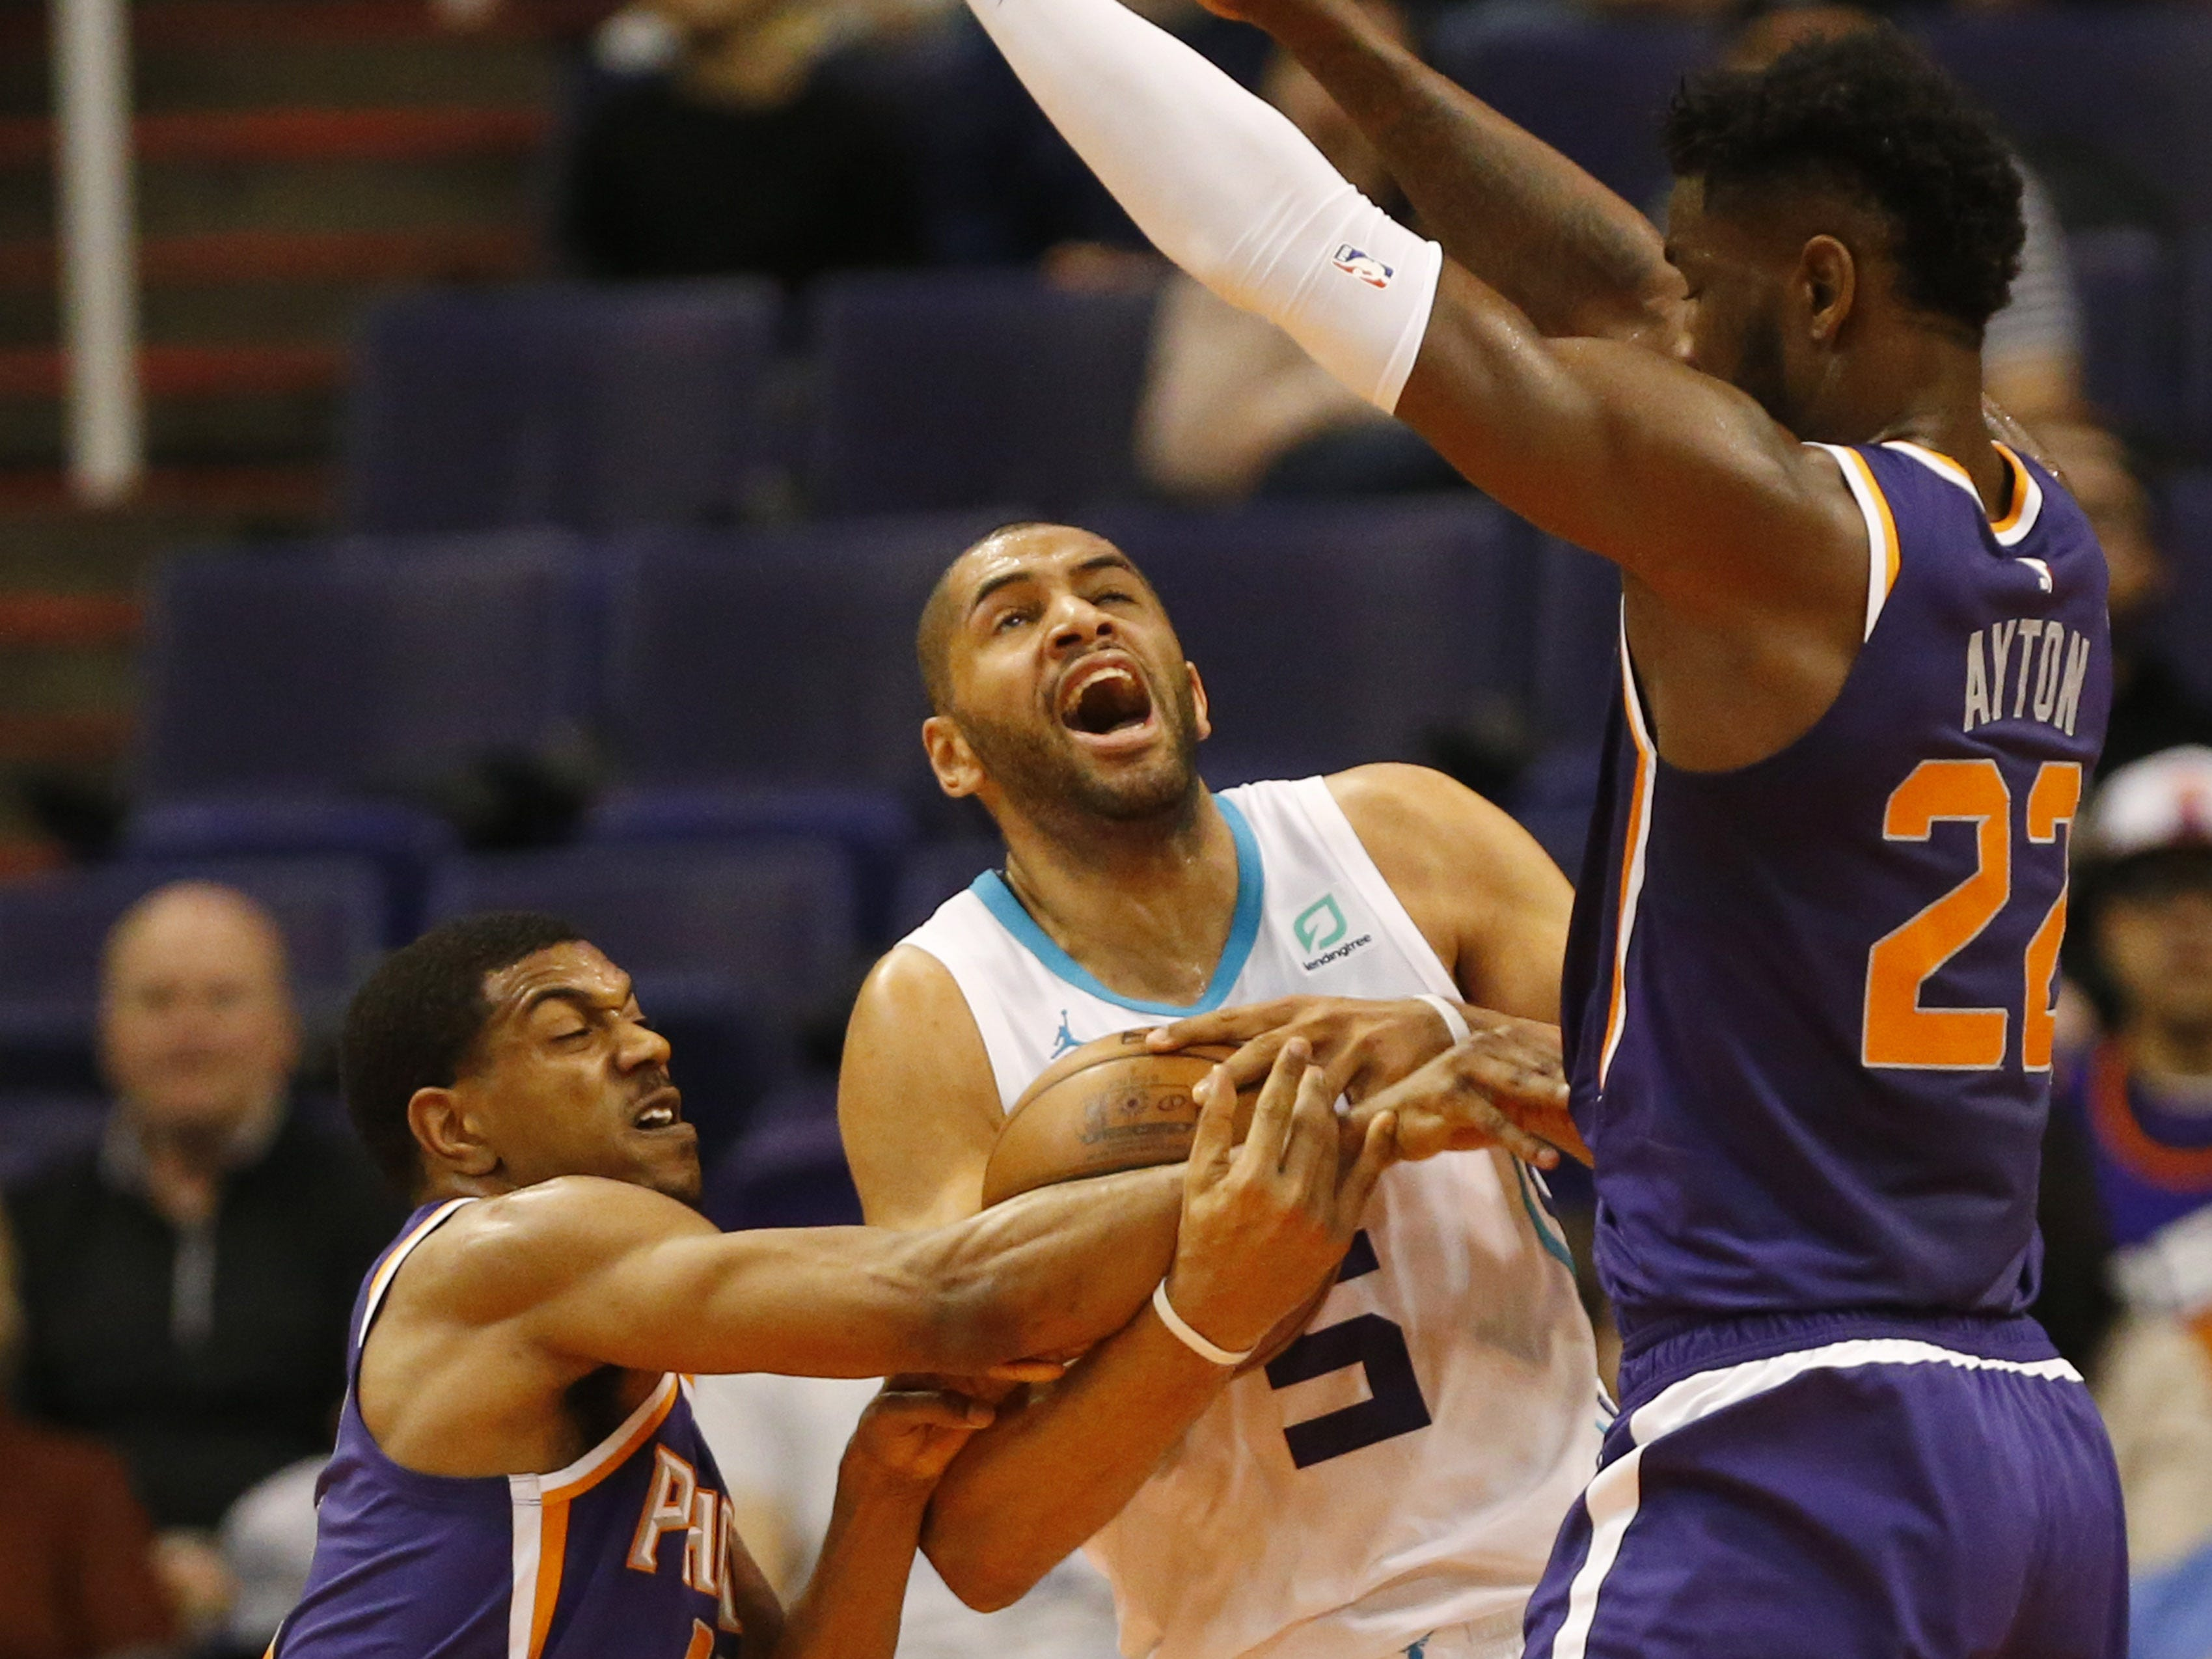 Phoenix Suns guard De'Anthony Melton (14) fouls Charlotte Hornets guard/forward Nicolas Batum (5) during the first quarter in Phoenix January 6, 2019.